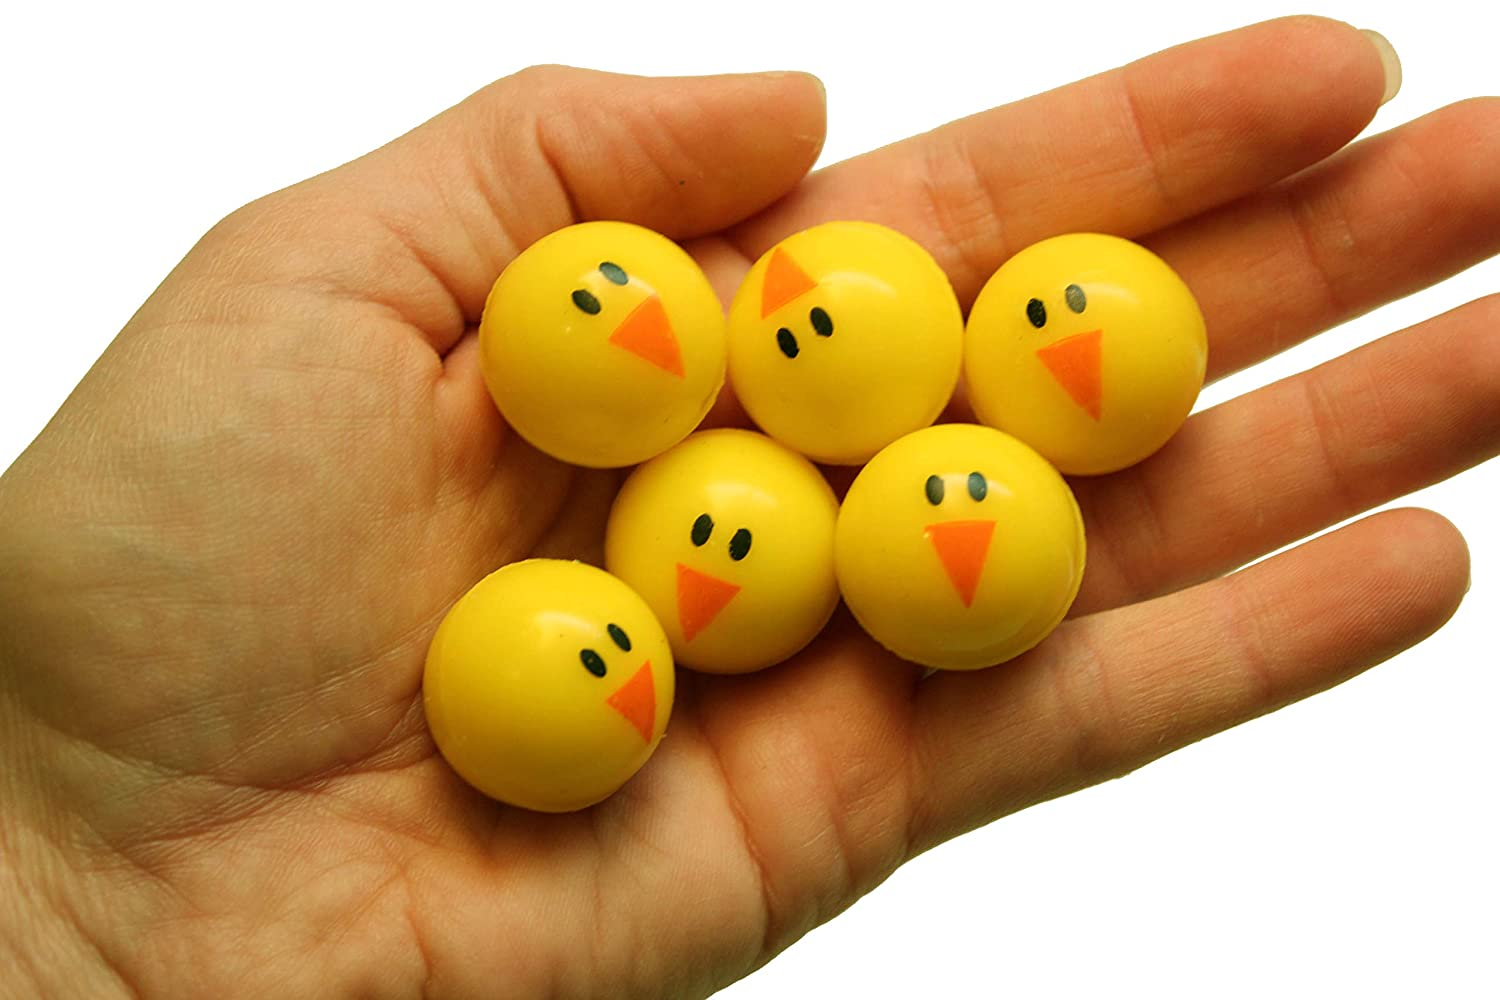 Small Novelty Prize Toy Bulk 4 Dozen Party Favors Gift Curious Minds Busy Bags 48 Cute Chick Bouncy Balls Easter